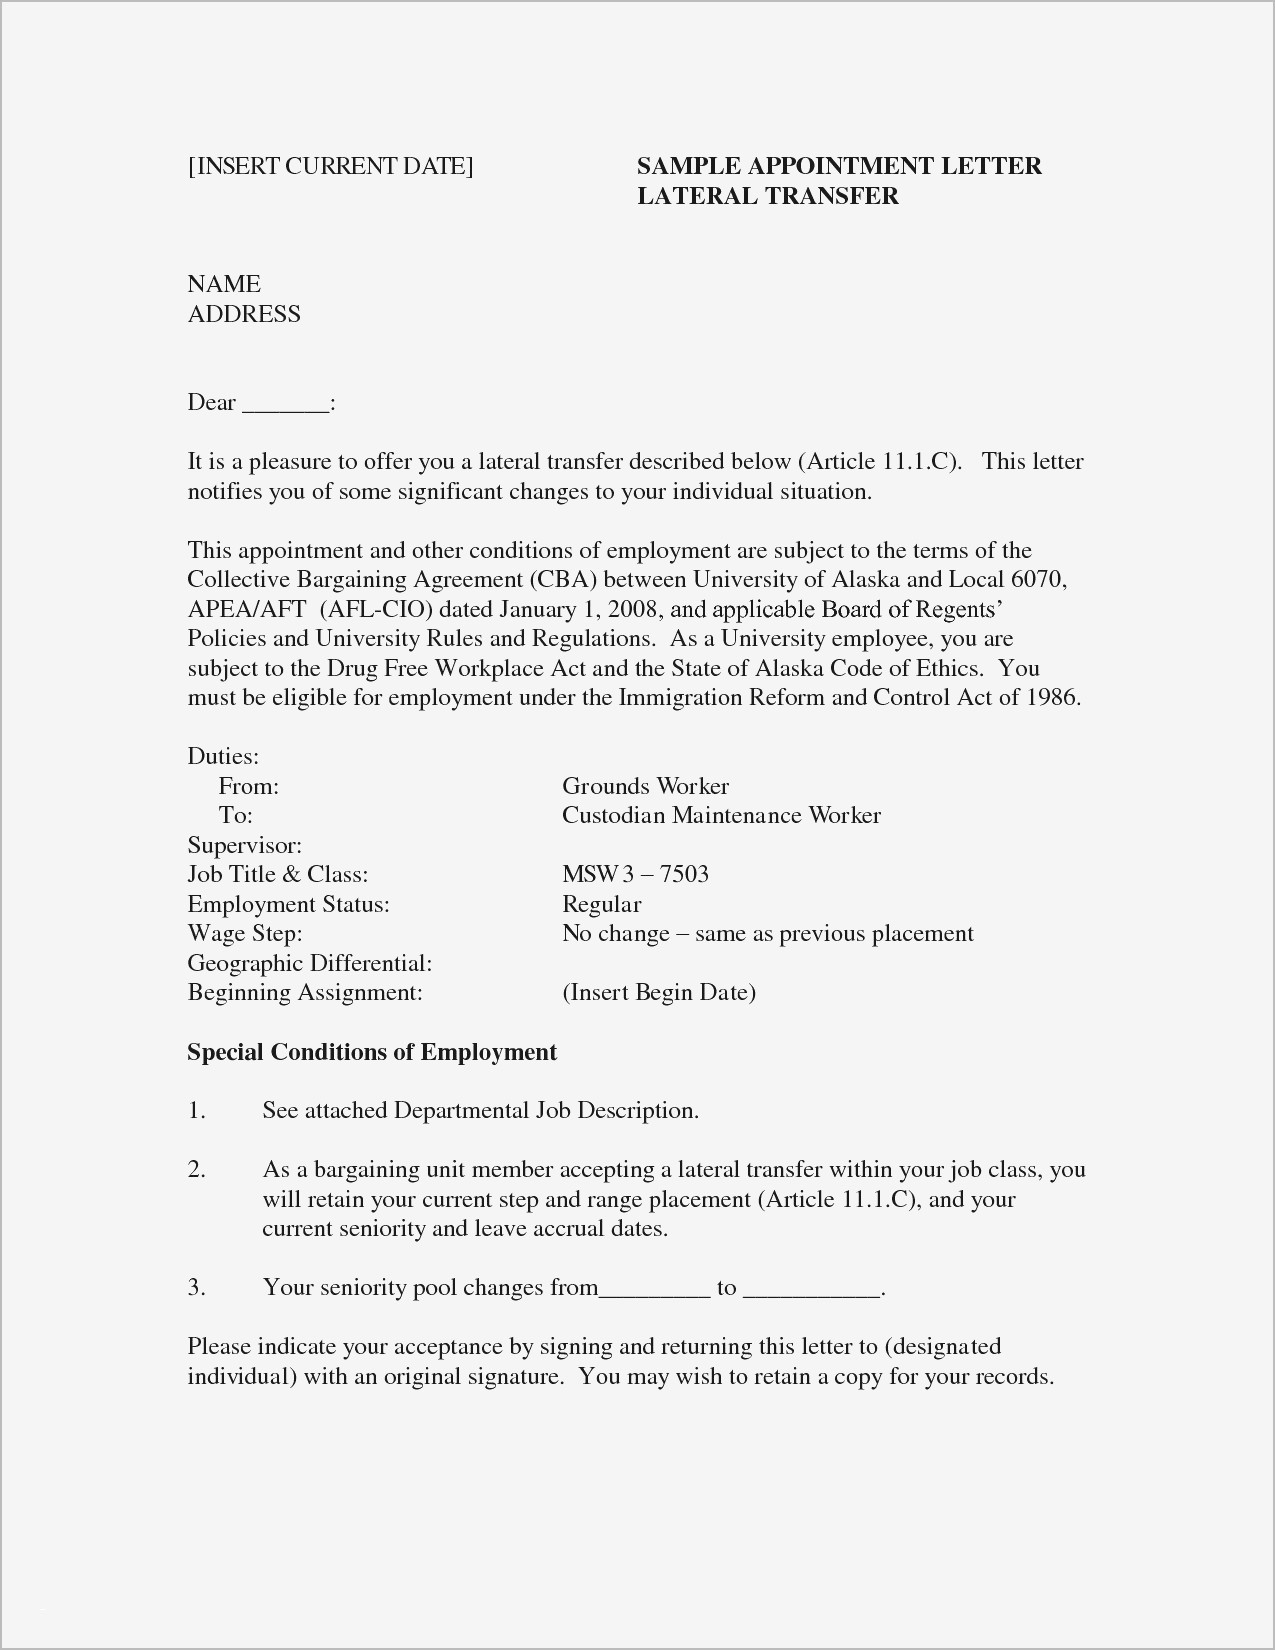 Copy and Paste Resume Templates - Copy and Paste Resume Templates Best Simple Job Resume Examples Best